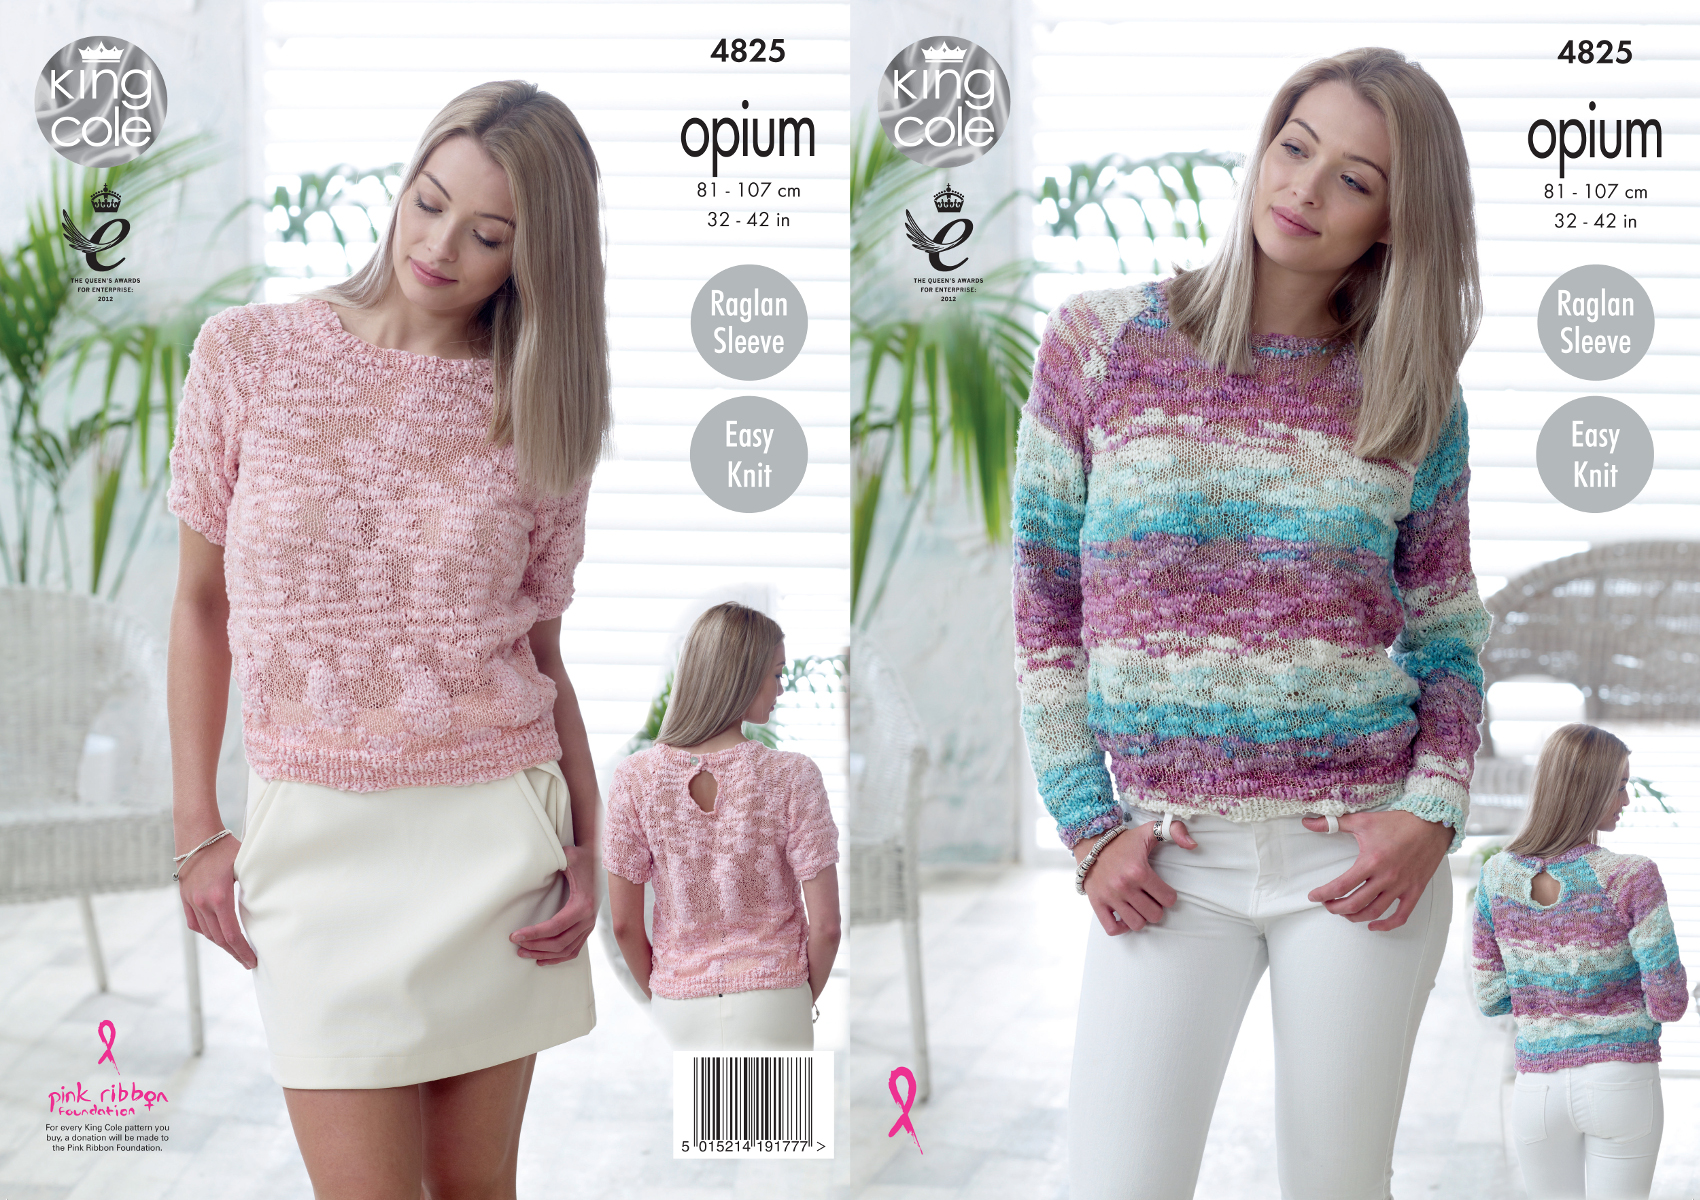 Easy knit sweater jumper ladies knitting pattern king cole opium easy knit sweater jumper ladies knitting pattern king cole opium womens 4825 bankloansurffo Gallery